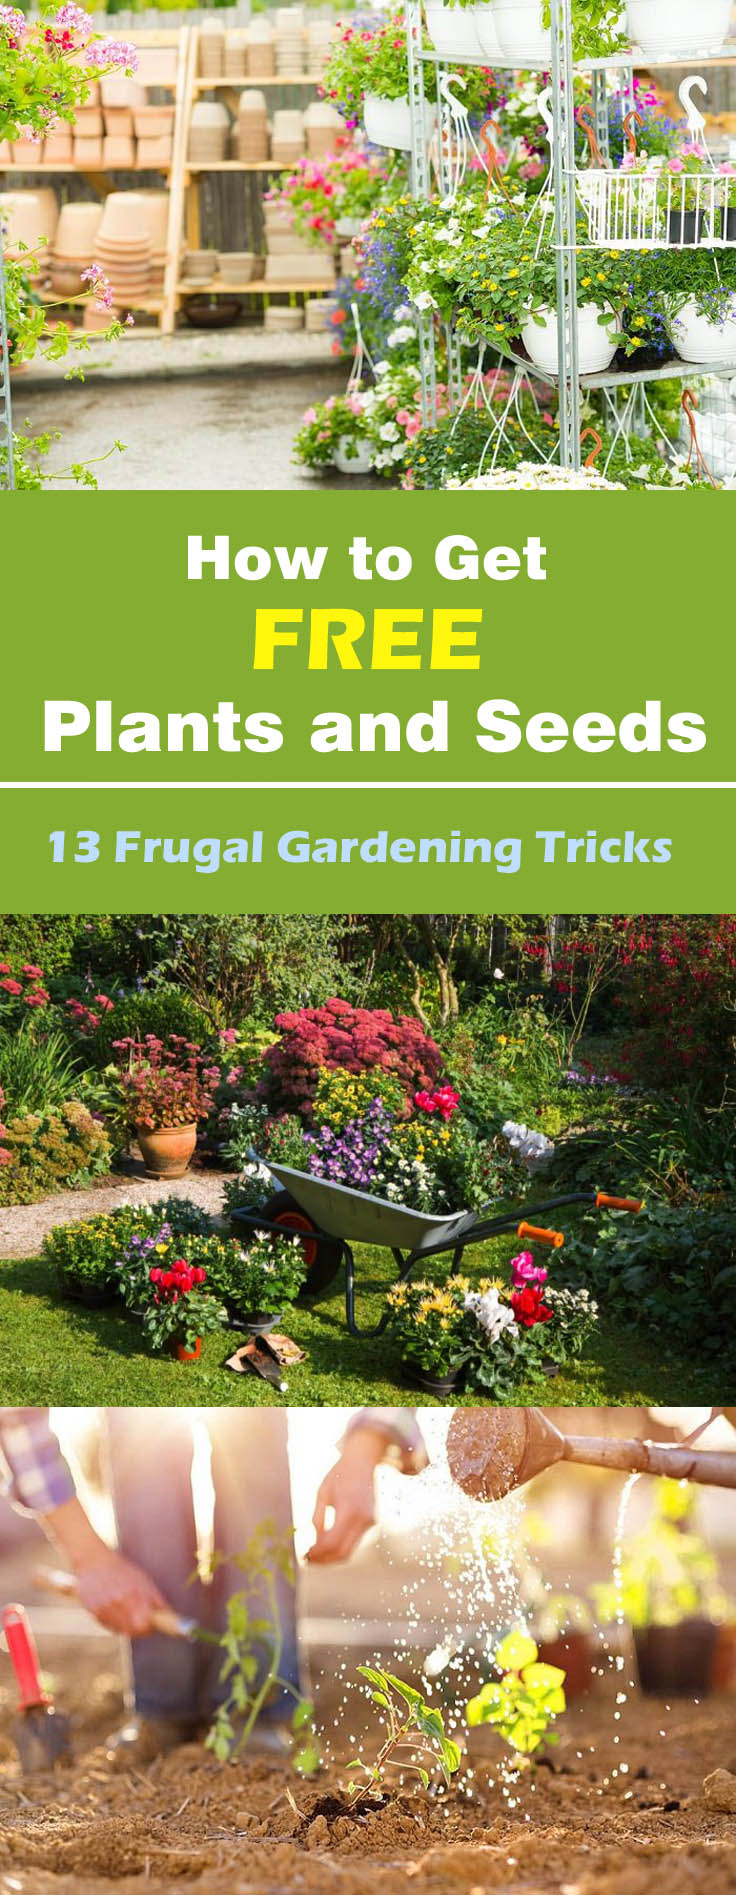 How to Get Free Plants and Seeds 13 Frugal Gardening Tricks. Frugal Landscaping Ideas Forum   SNSM155 com